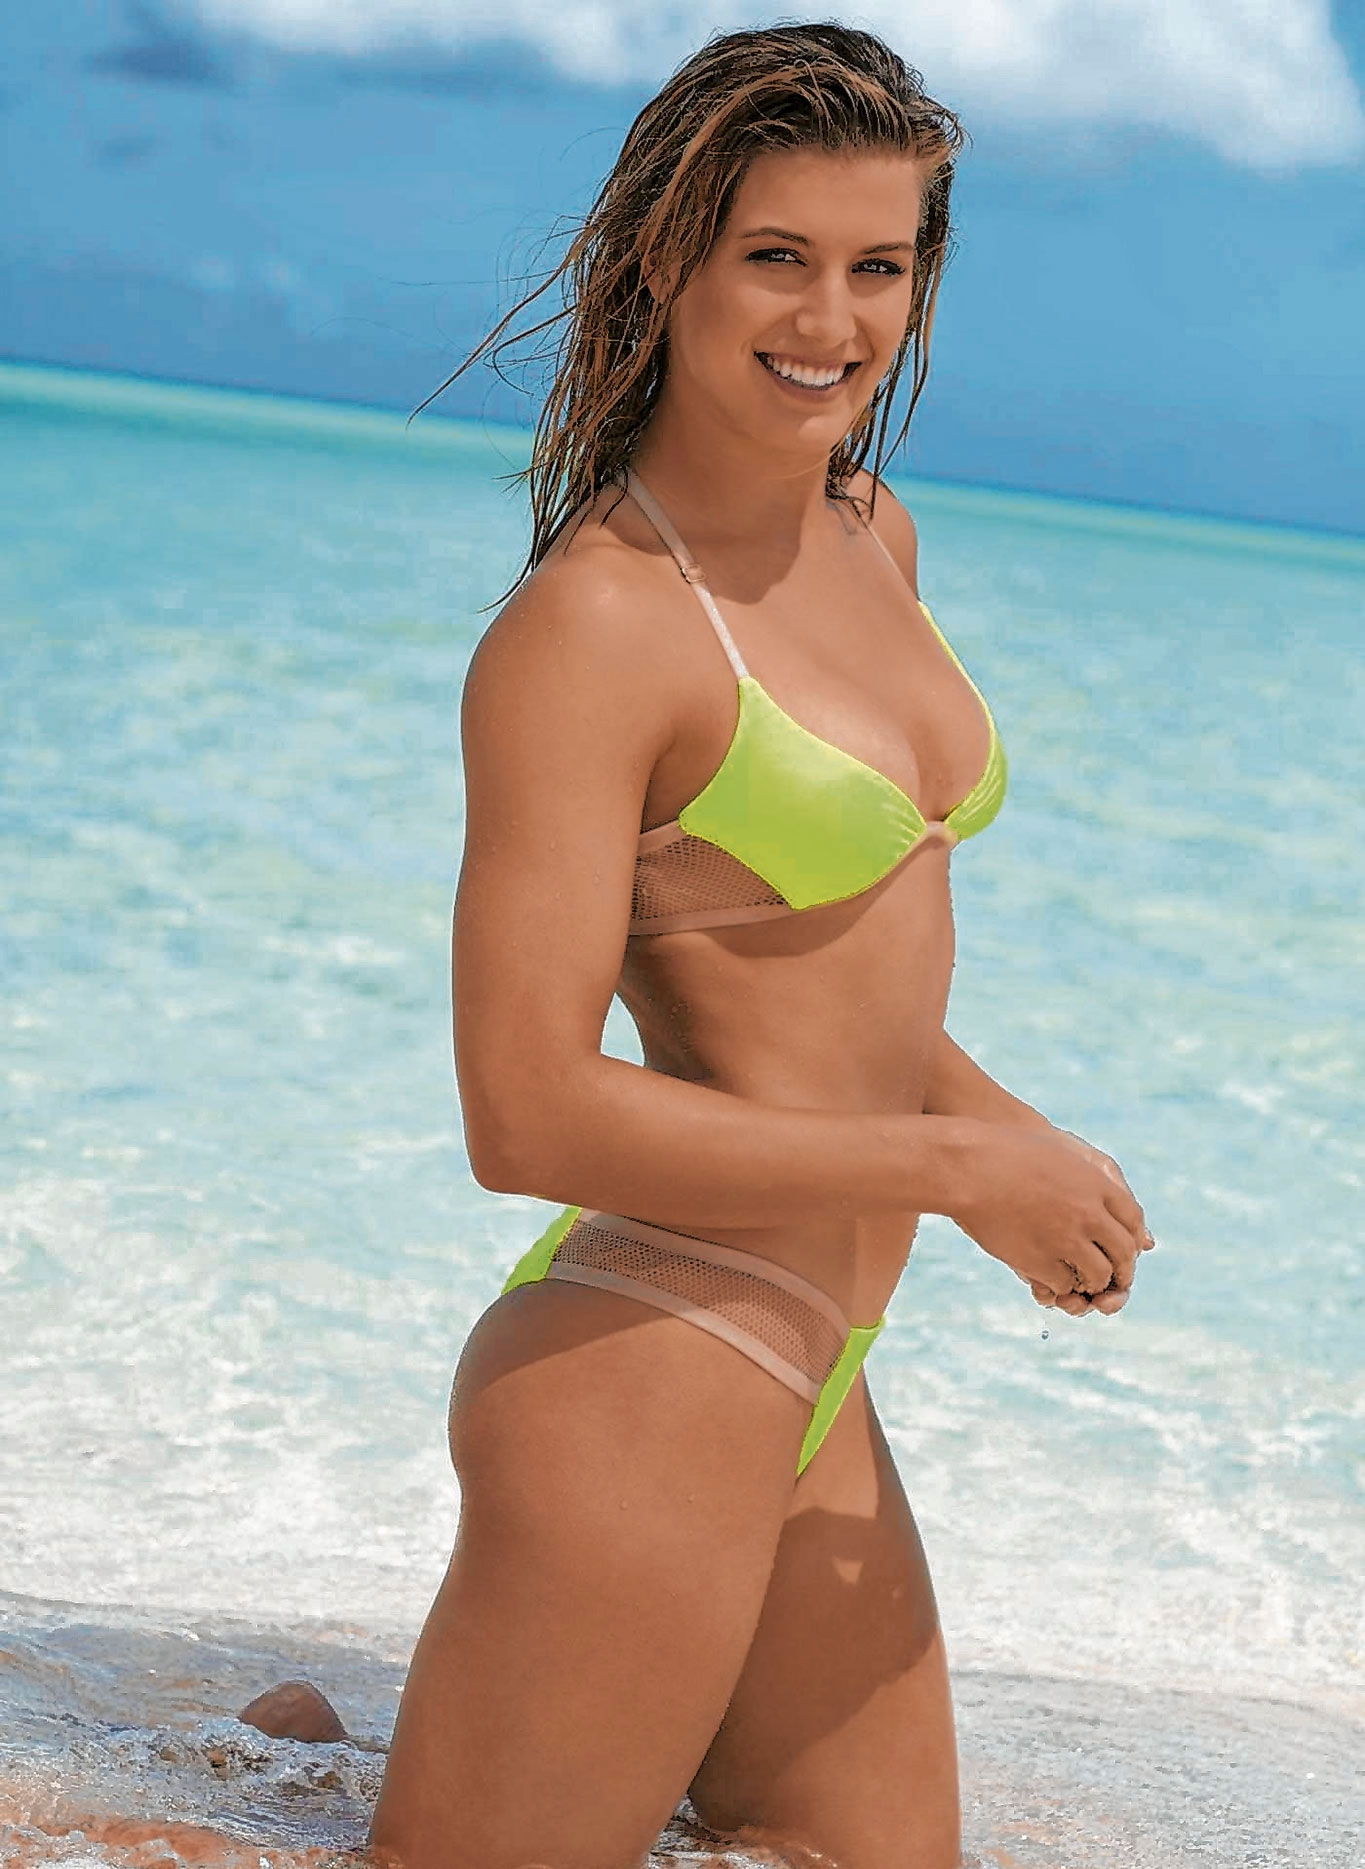 Eugenie Bouchard Hot in Bikini